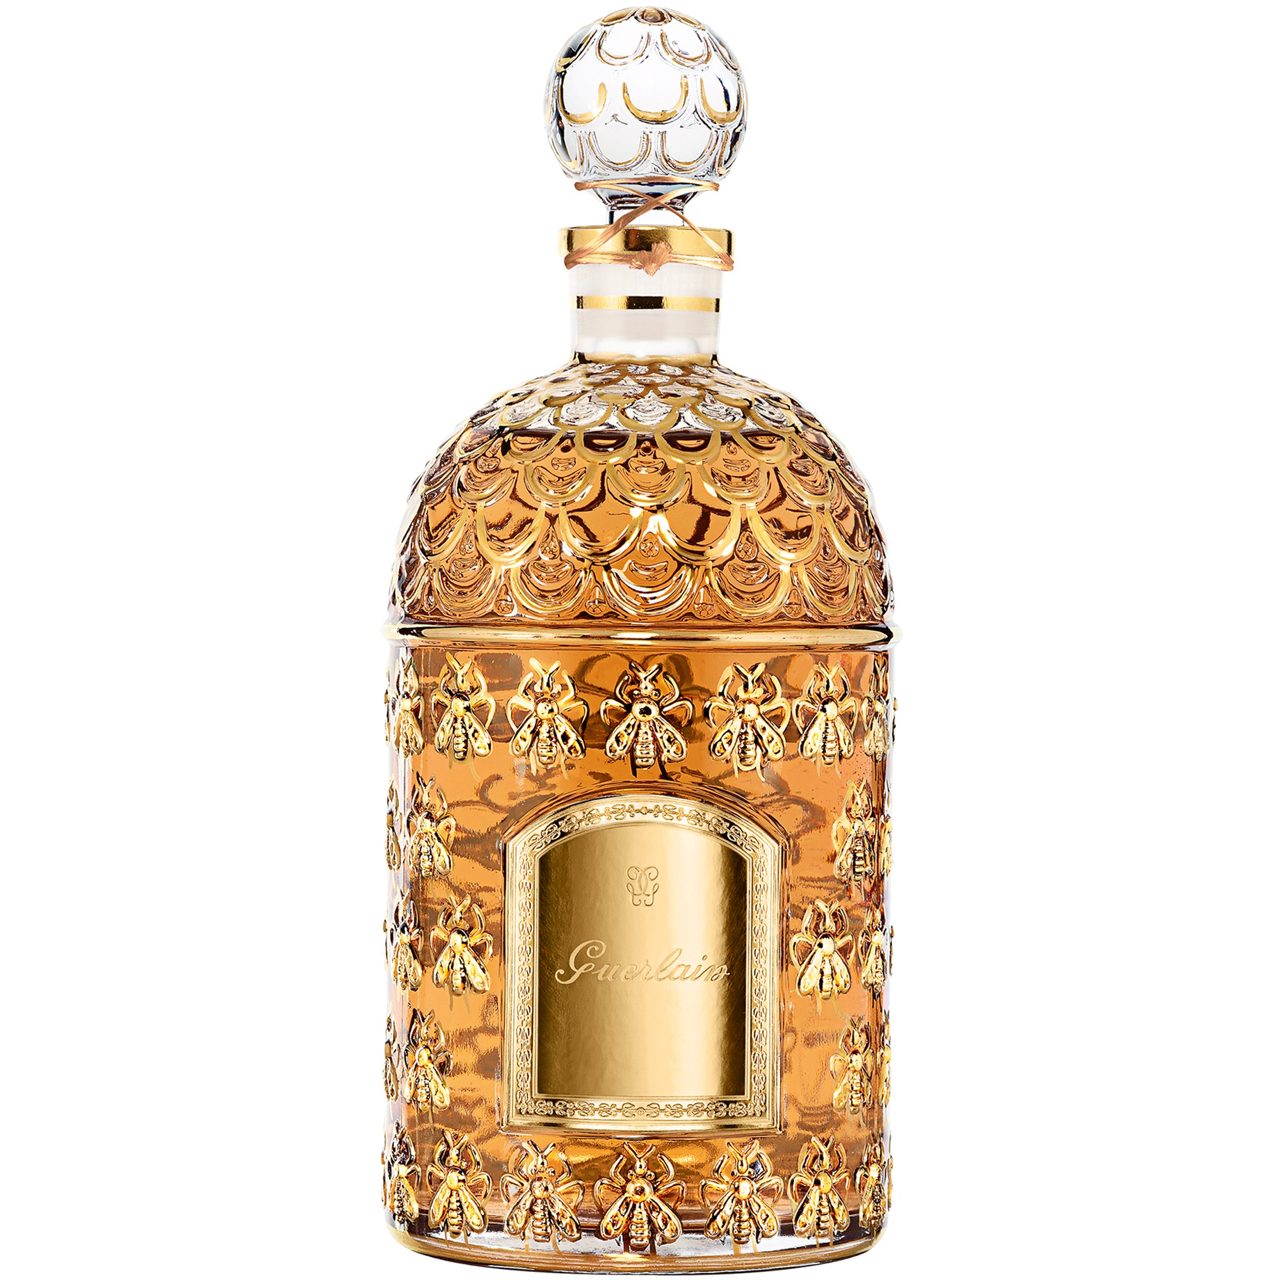 Guerlain's bee bottle brought to life on film